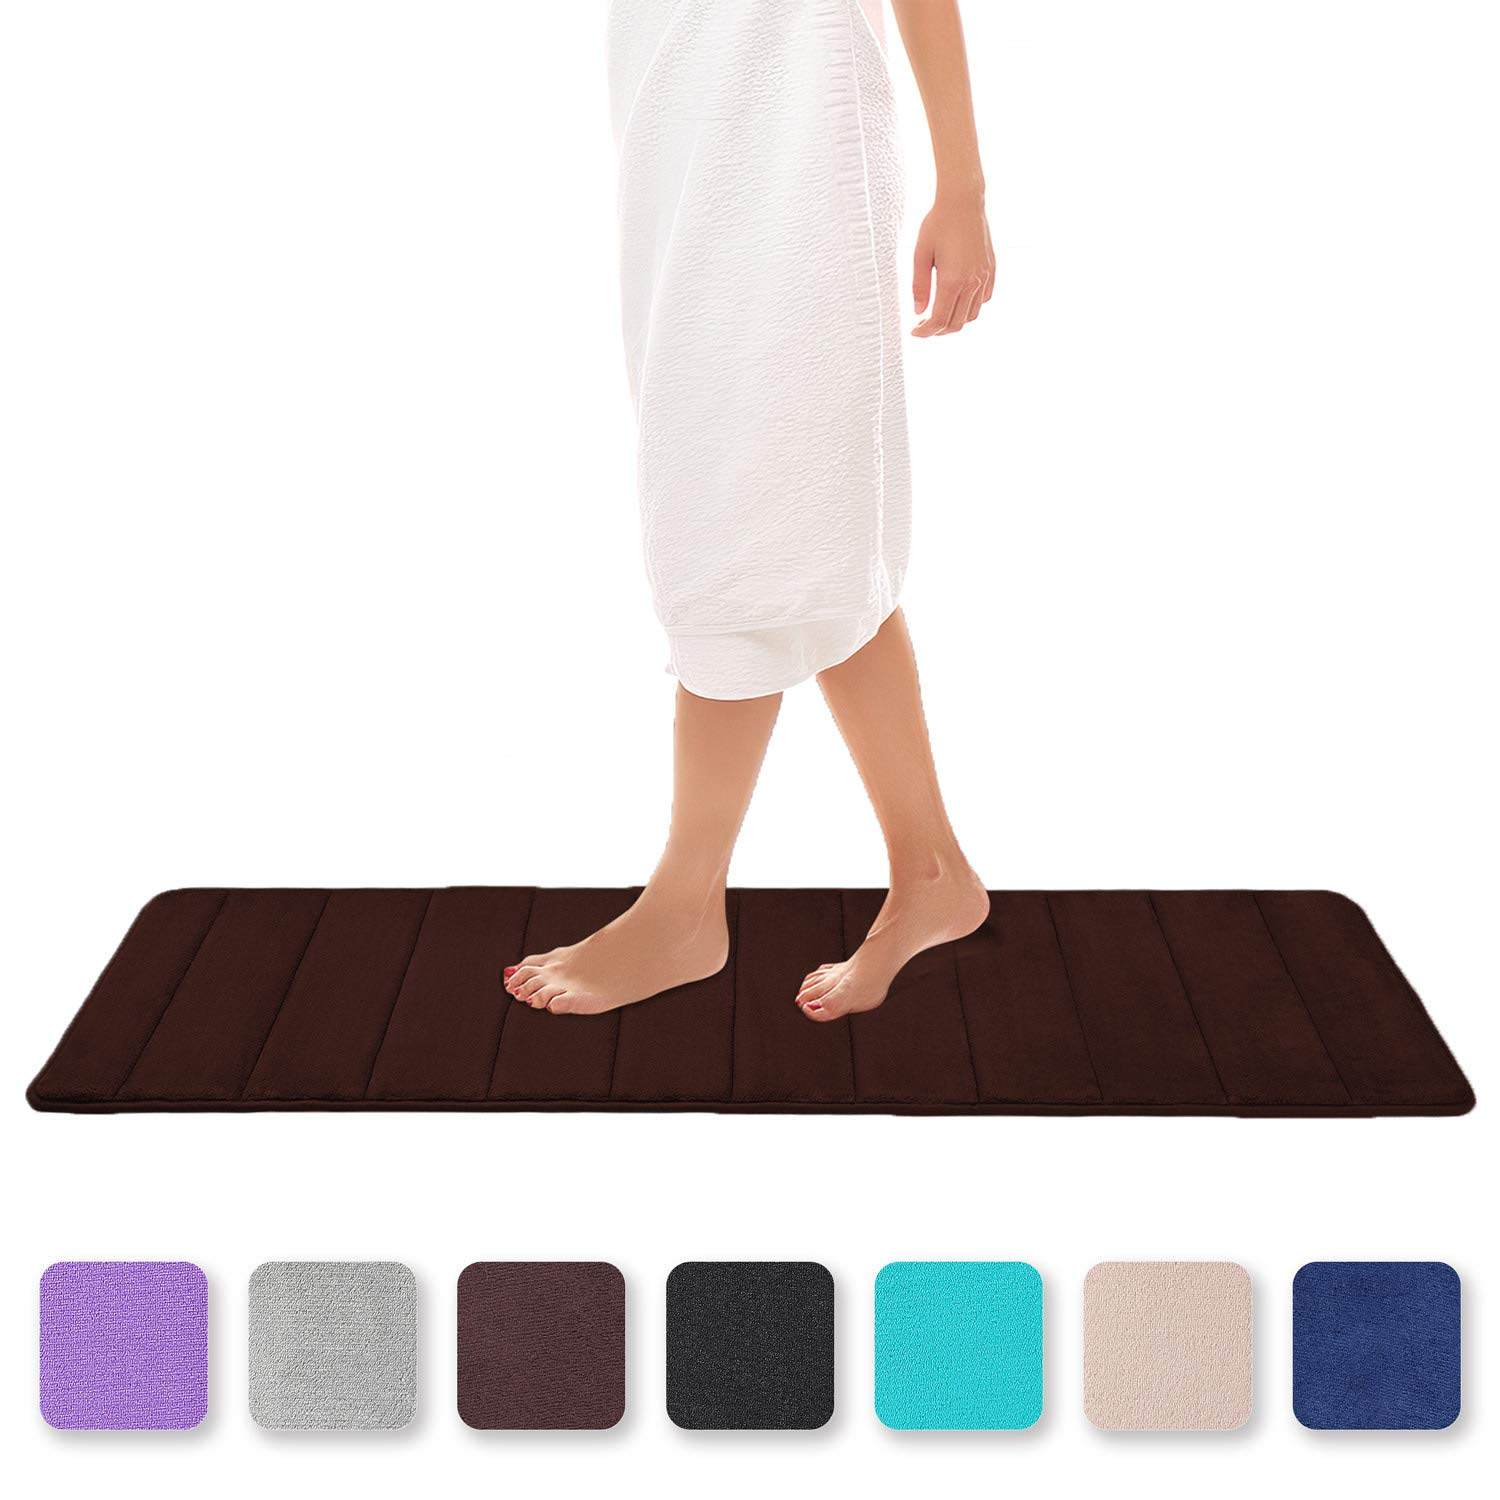 Colorxy Memory Foam Bath Mat - Soft & Absorbent Bathroom Rugs Non Slip Large Bath Rug Runner for Kitchen Bathroom Floors 24''x70'', Chocolate